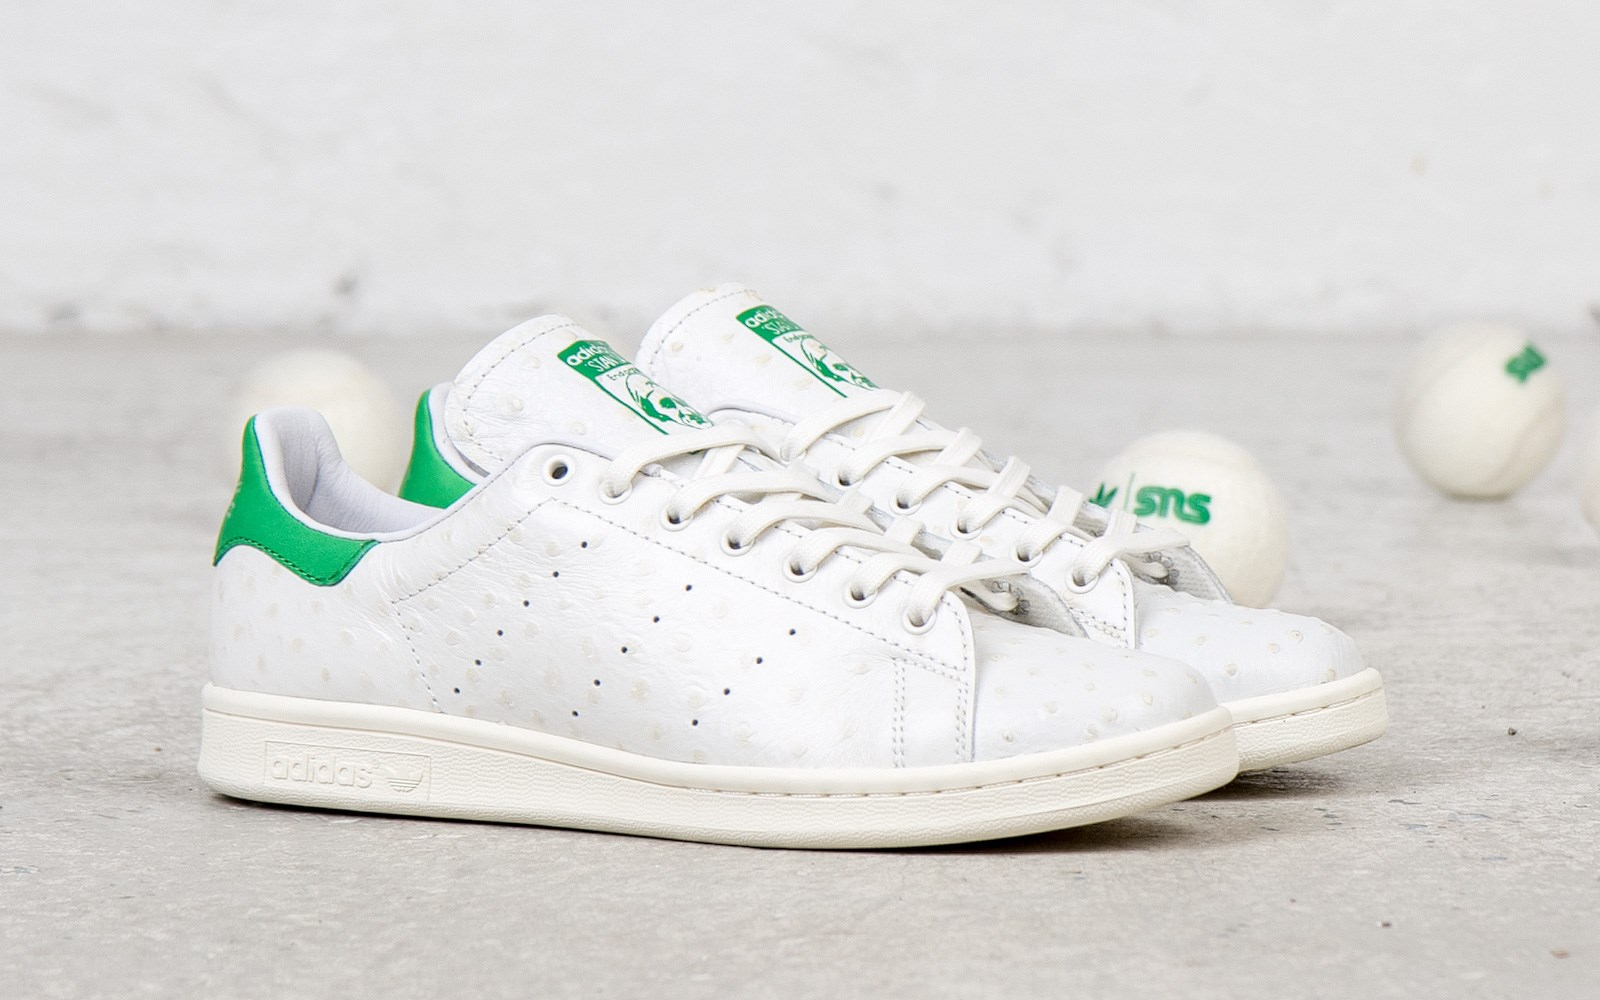 adidas-originals-consortium-stan-smith-ostrich-leather-detailed-images-1